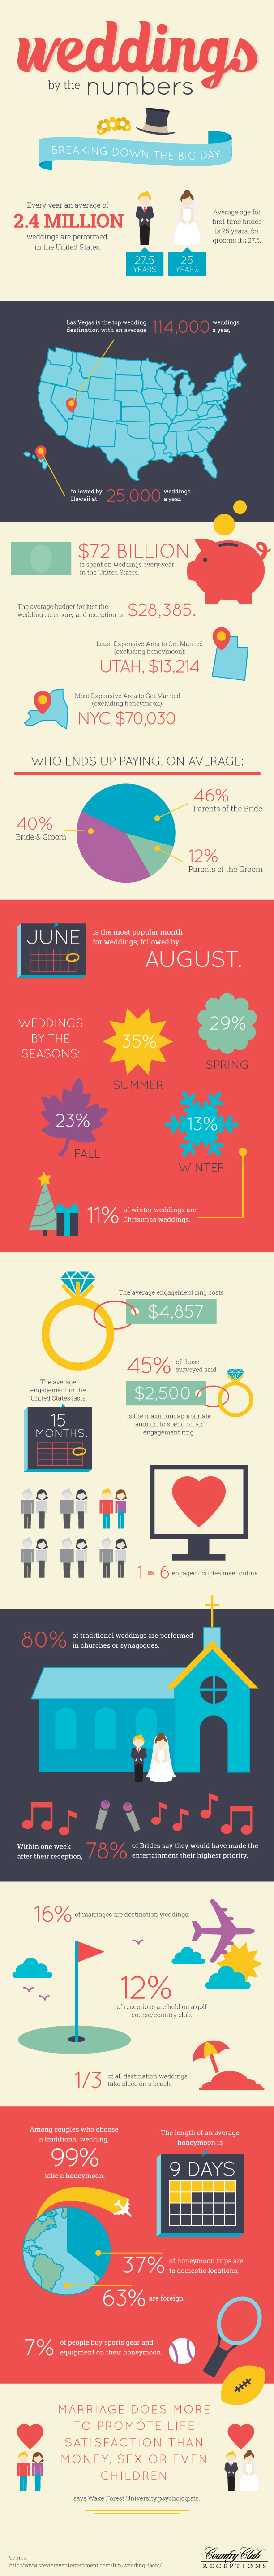 Wedding By The Numbers